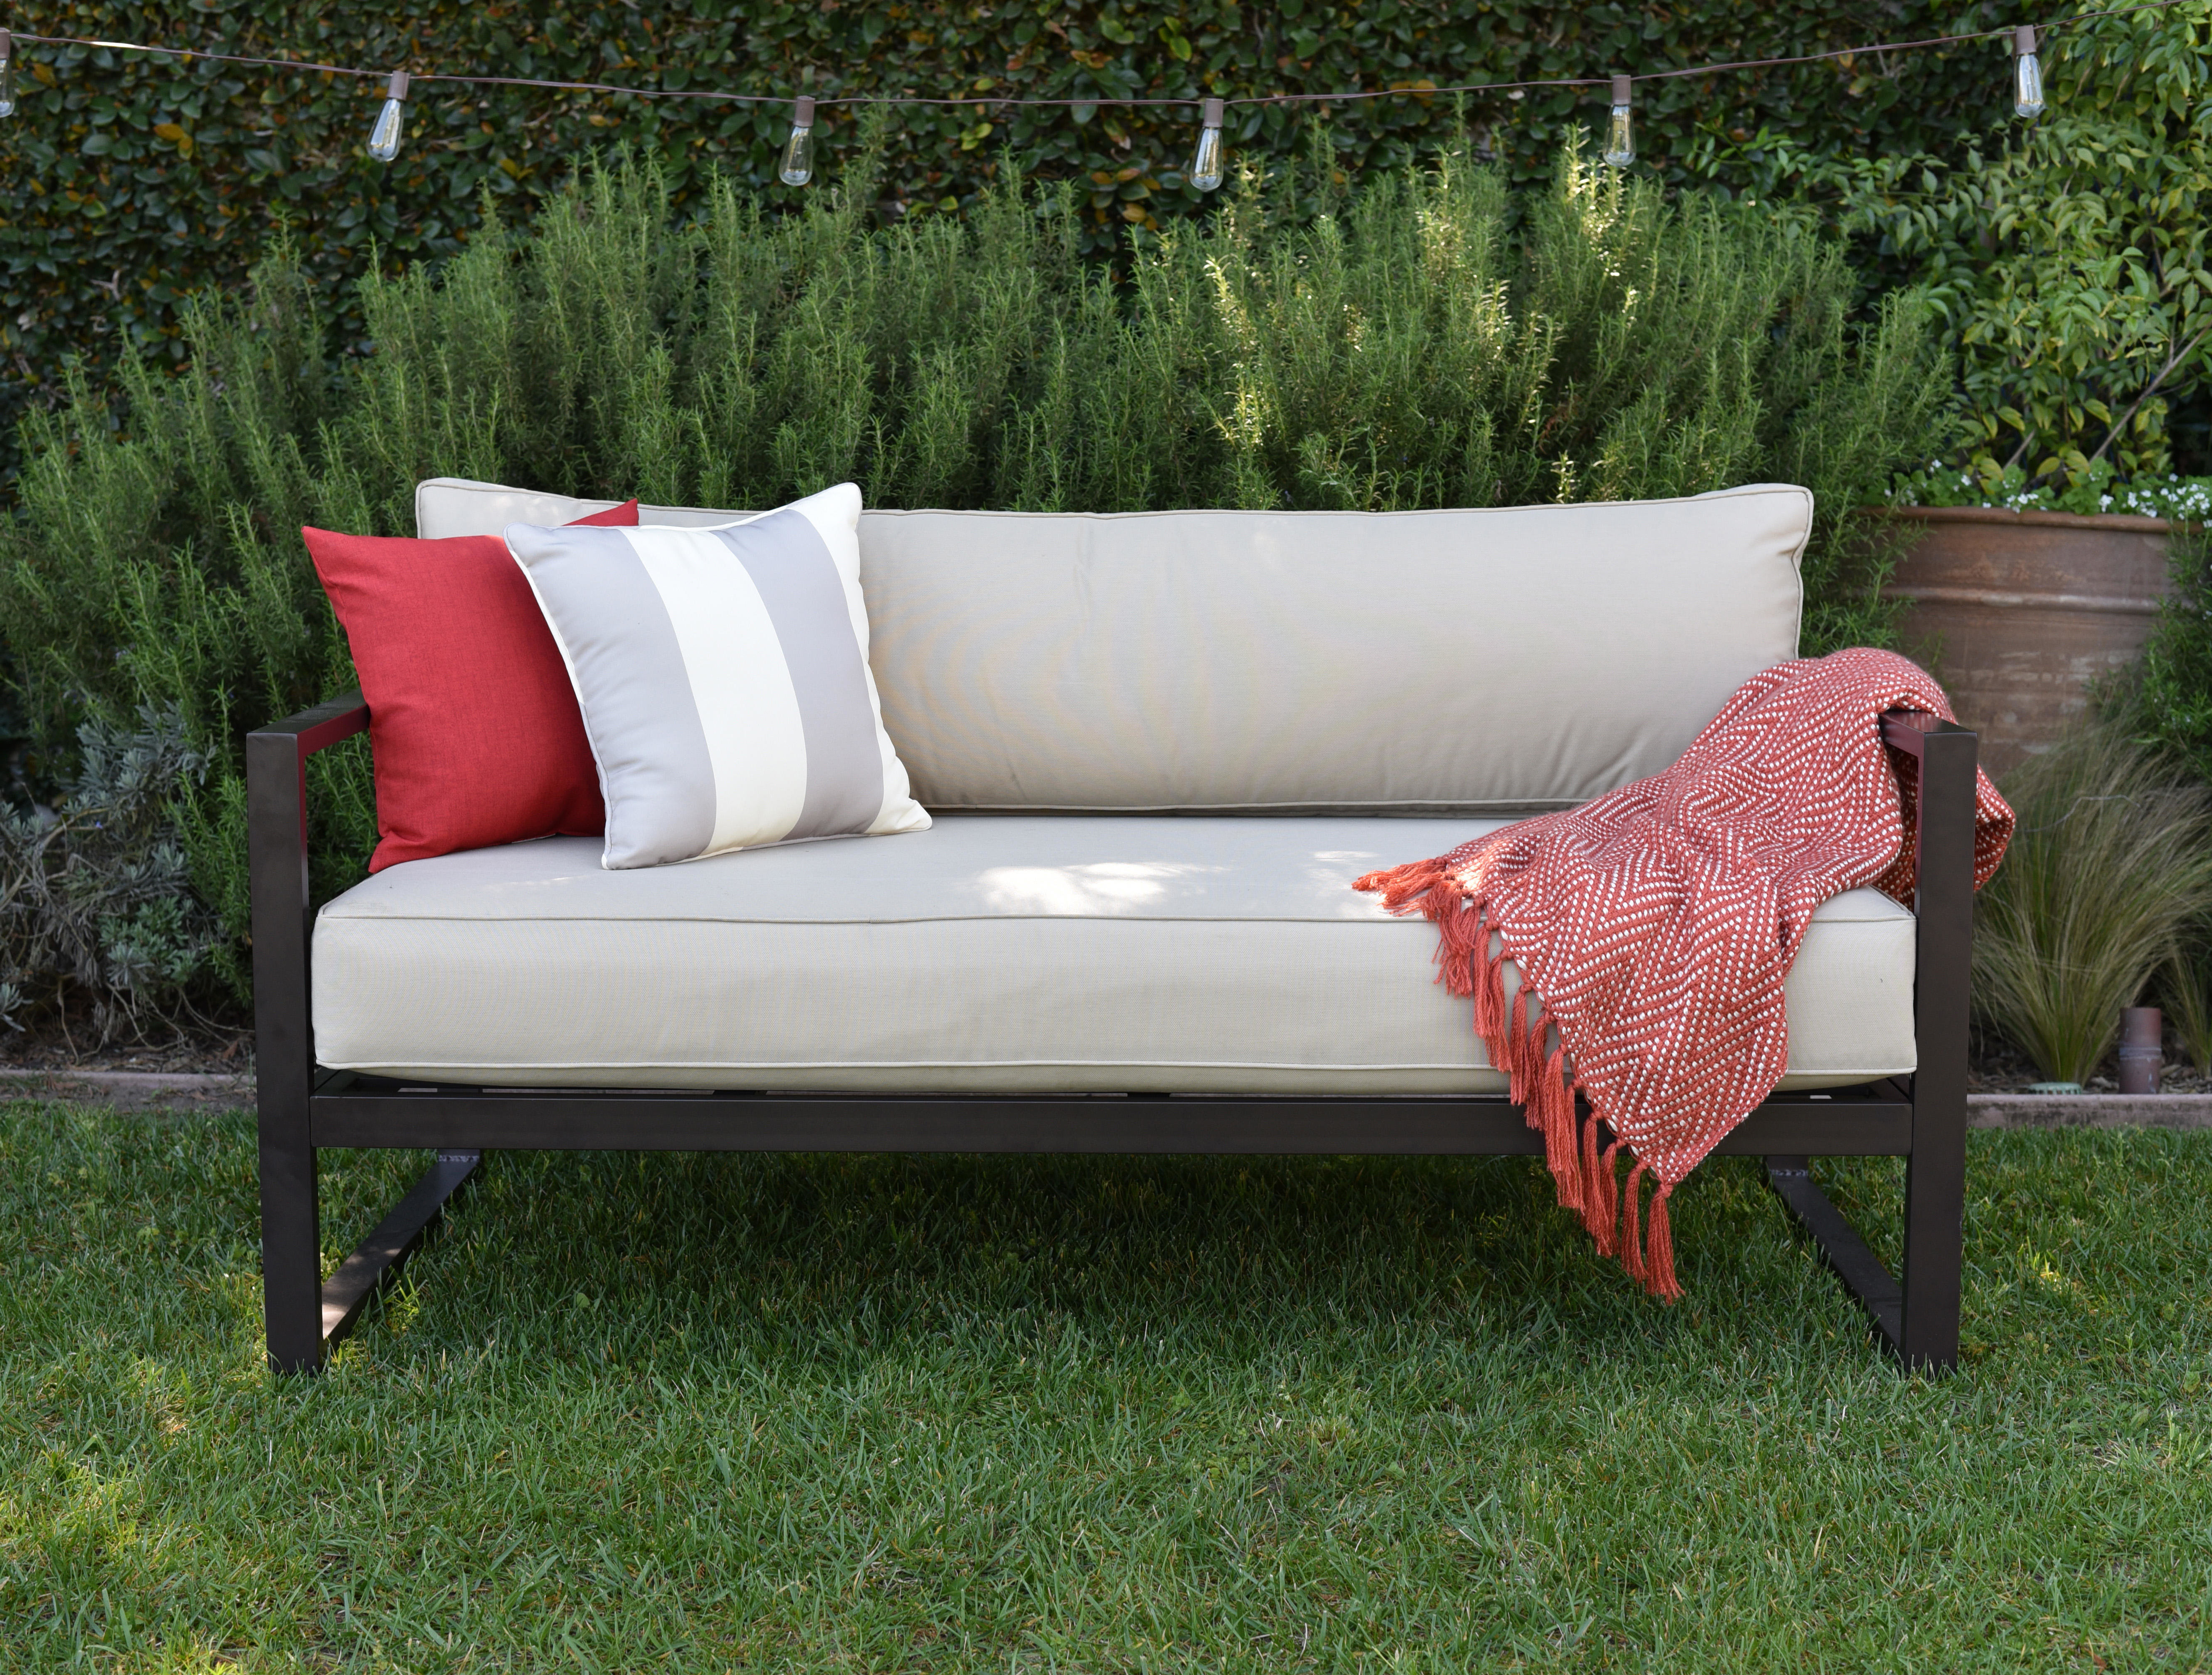 Catalina Outdoor Sofa With Cushions Intended For Newest Newbury Patio Sofas With Cushions (View 3 of 20)